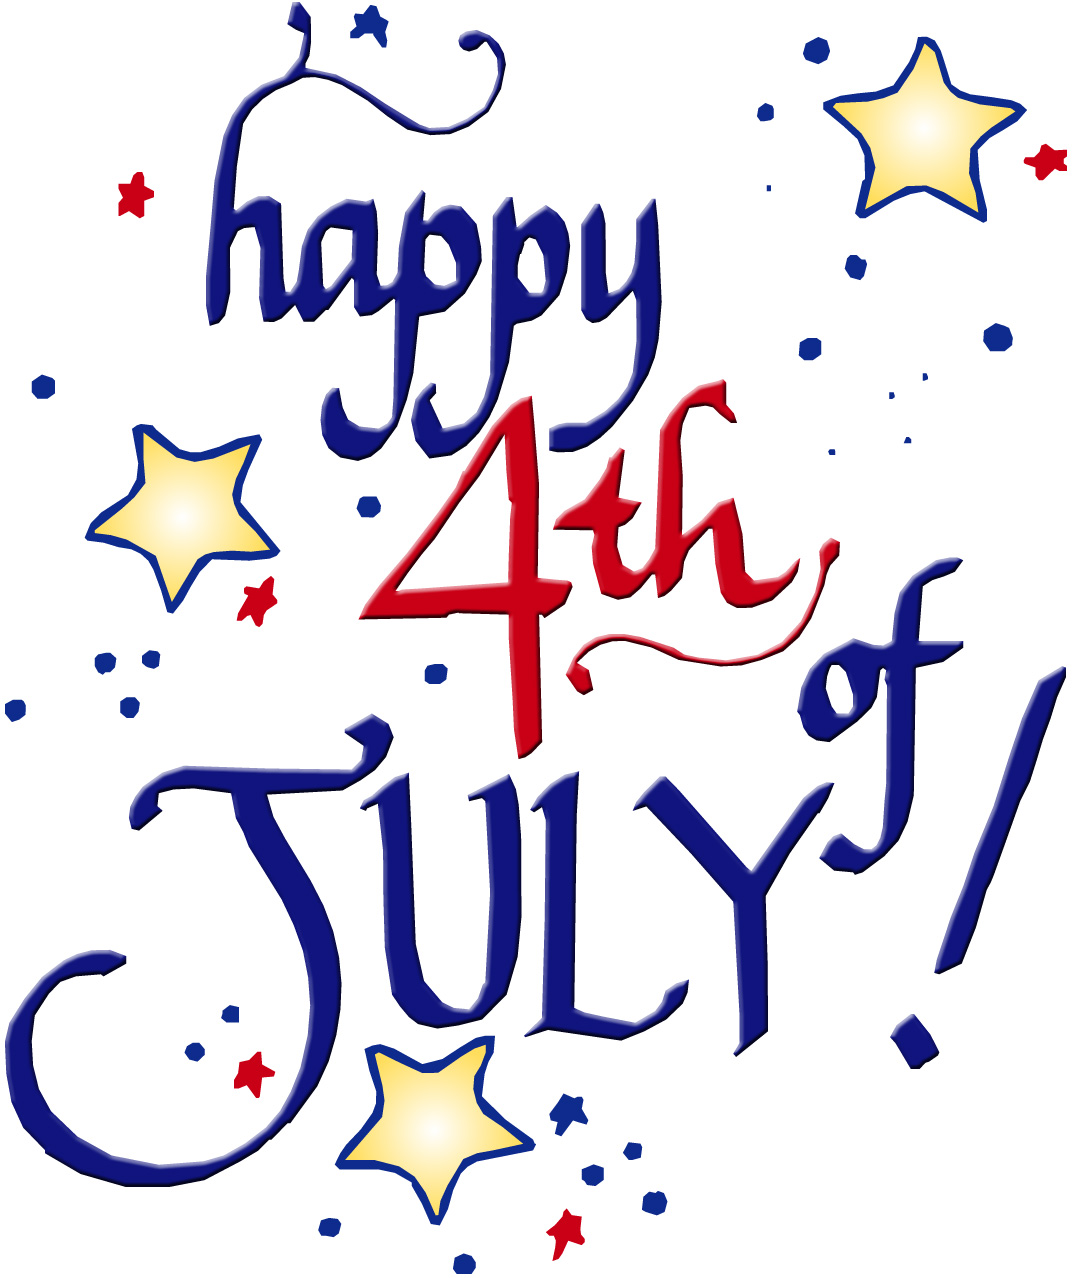 Free Clipart Google Images July 4th Scho-Free Clipart Google Images July 4th School Clipart-10